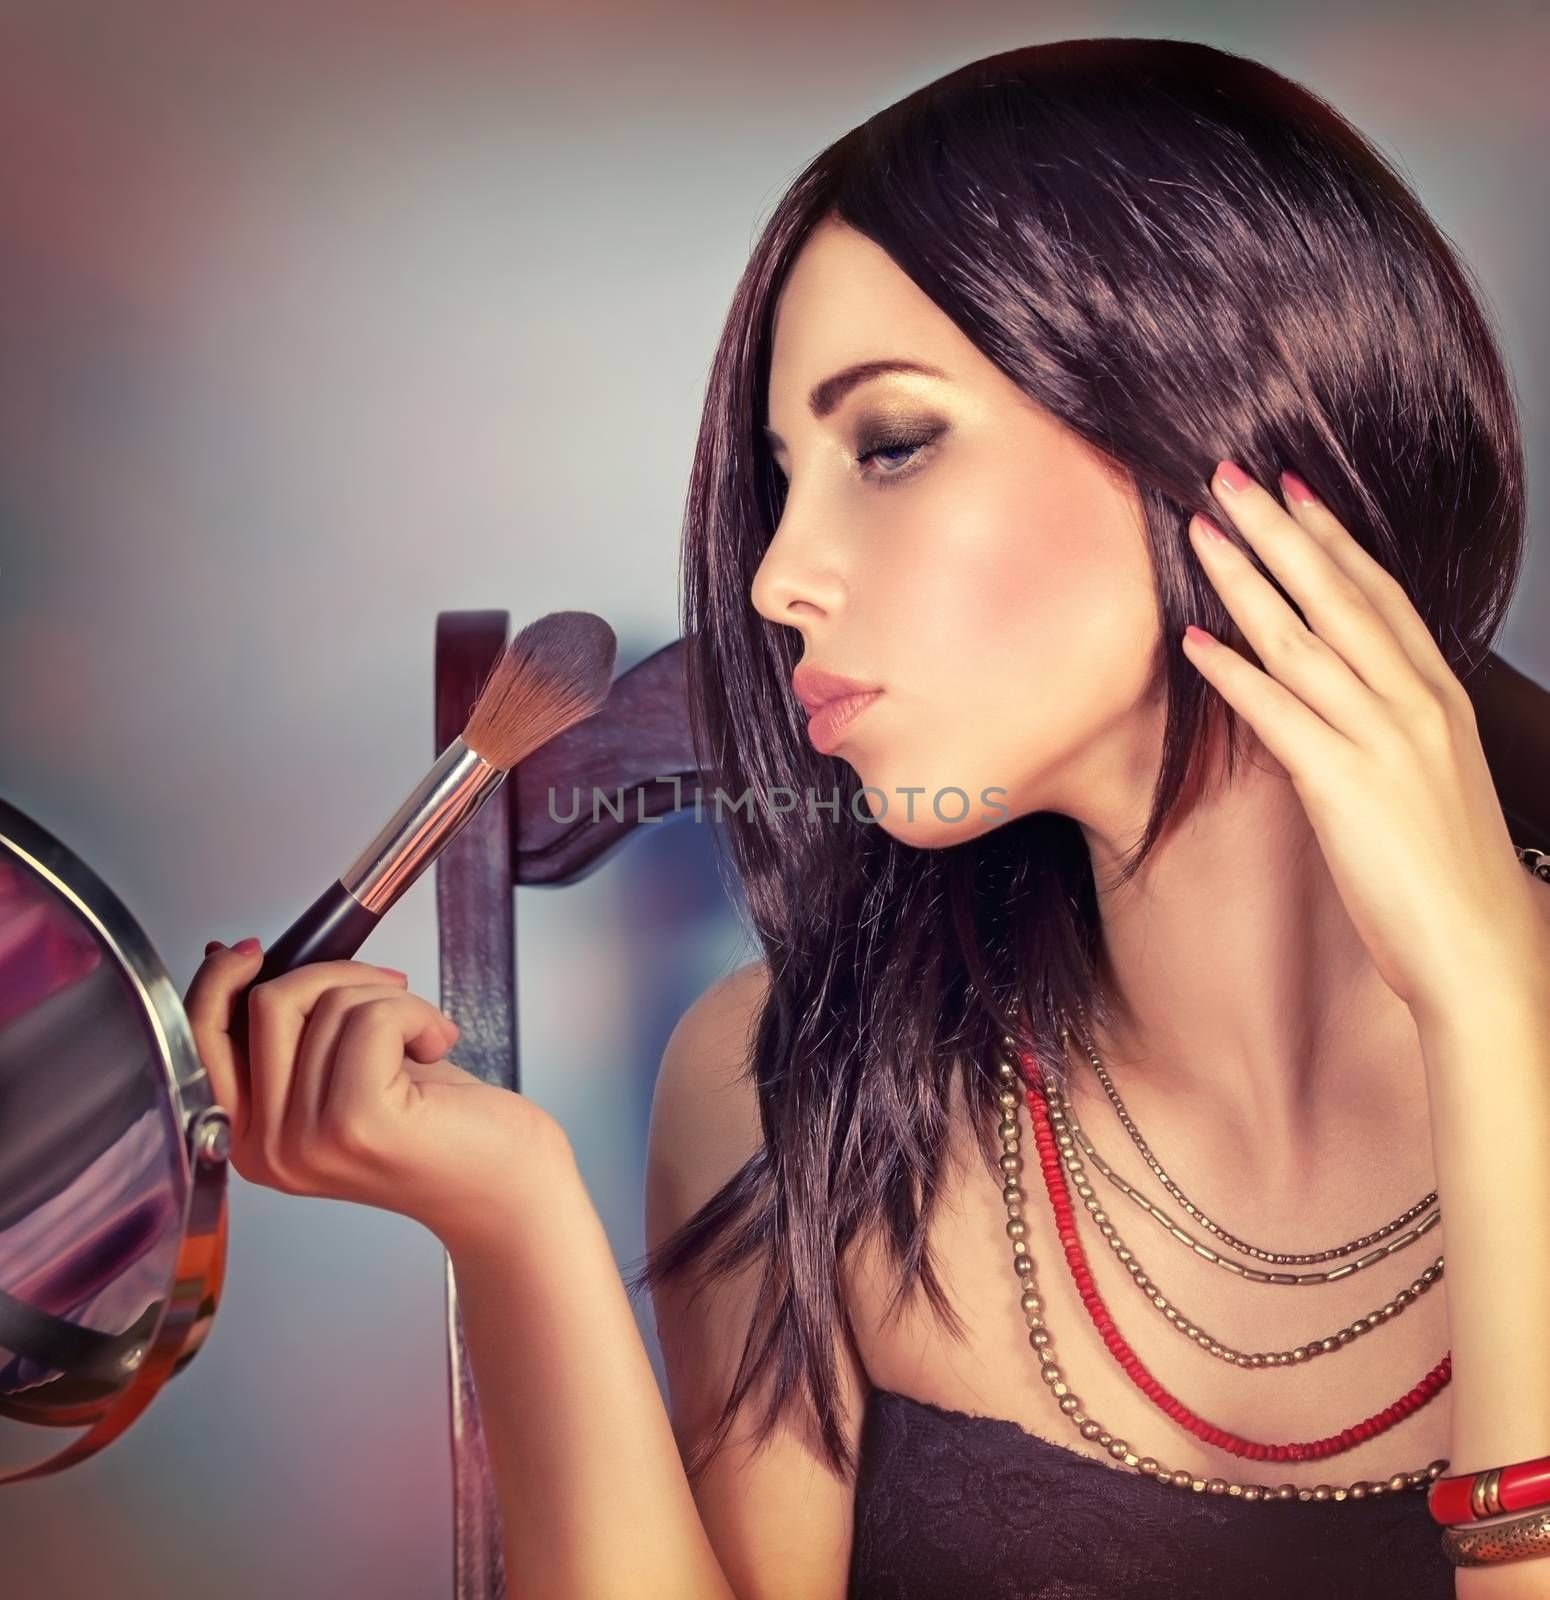 Fashion woman portrait, attractive girl looking in the mirror and doing stylish makeup, preparation to party, gorgeous fashionable look